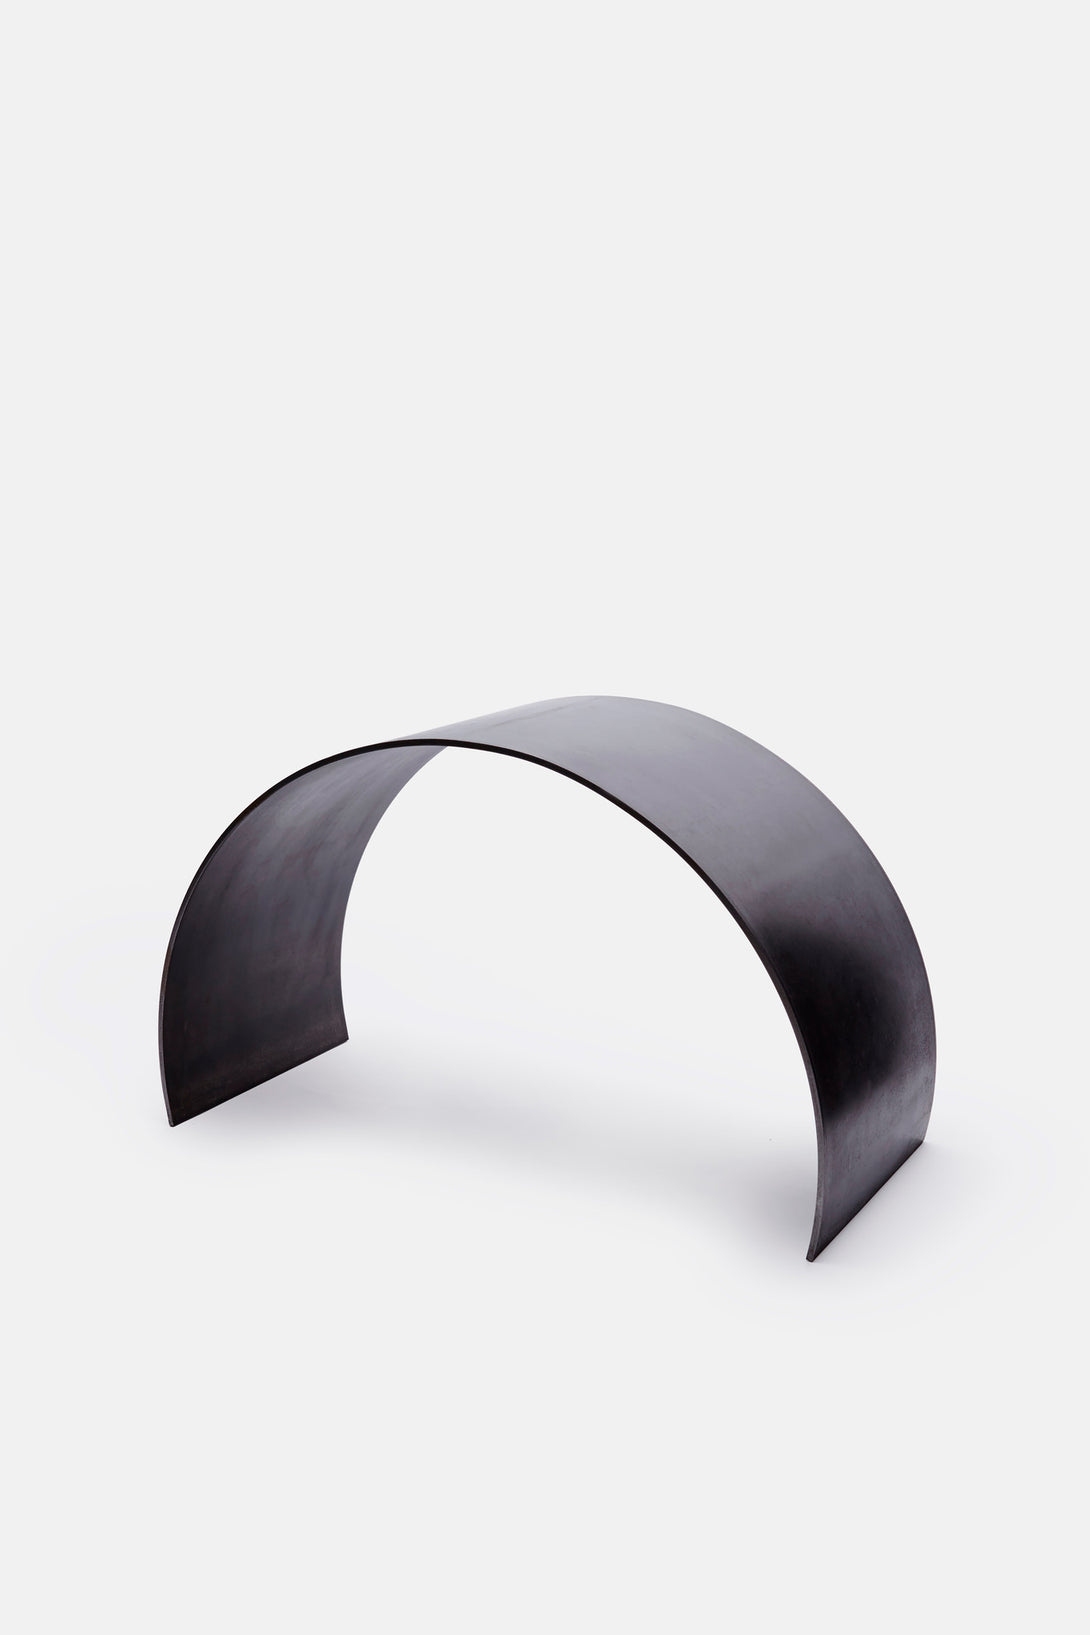 Waxed Steel Curved Arc Stool